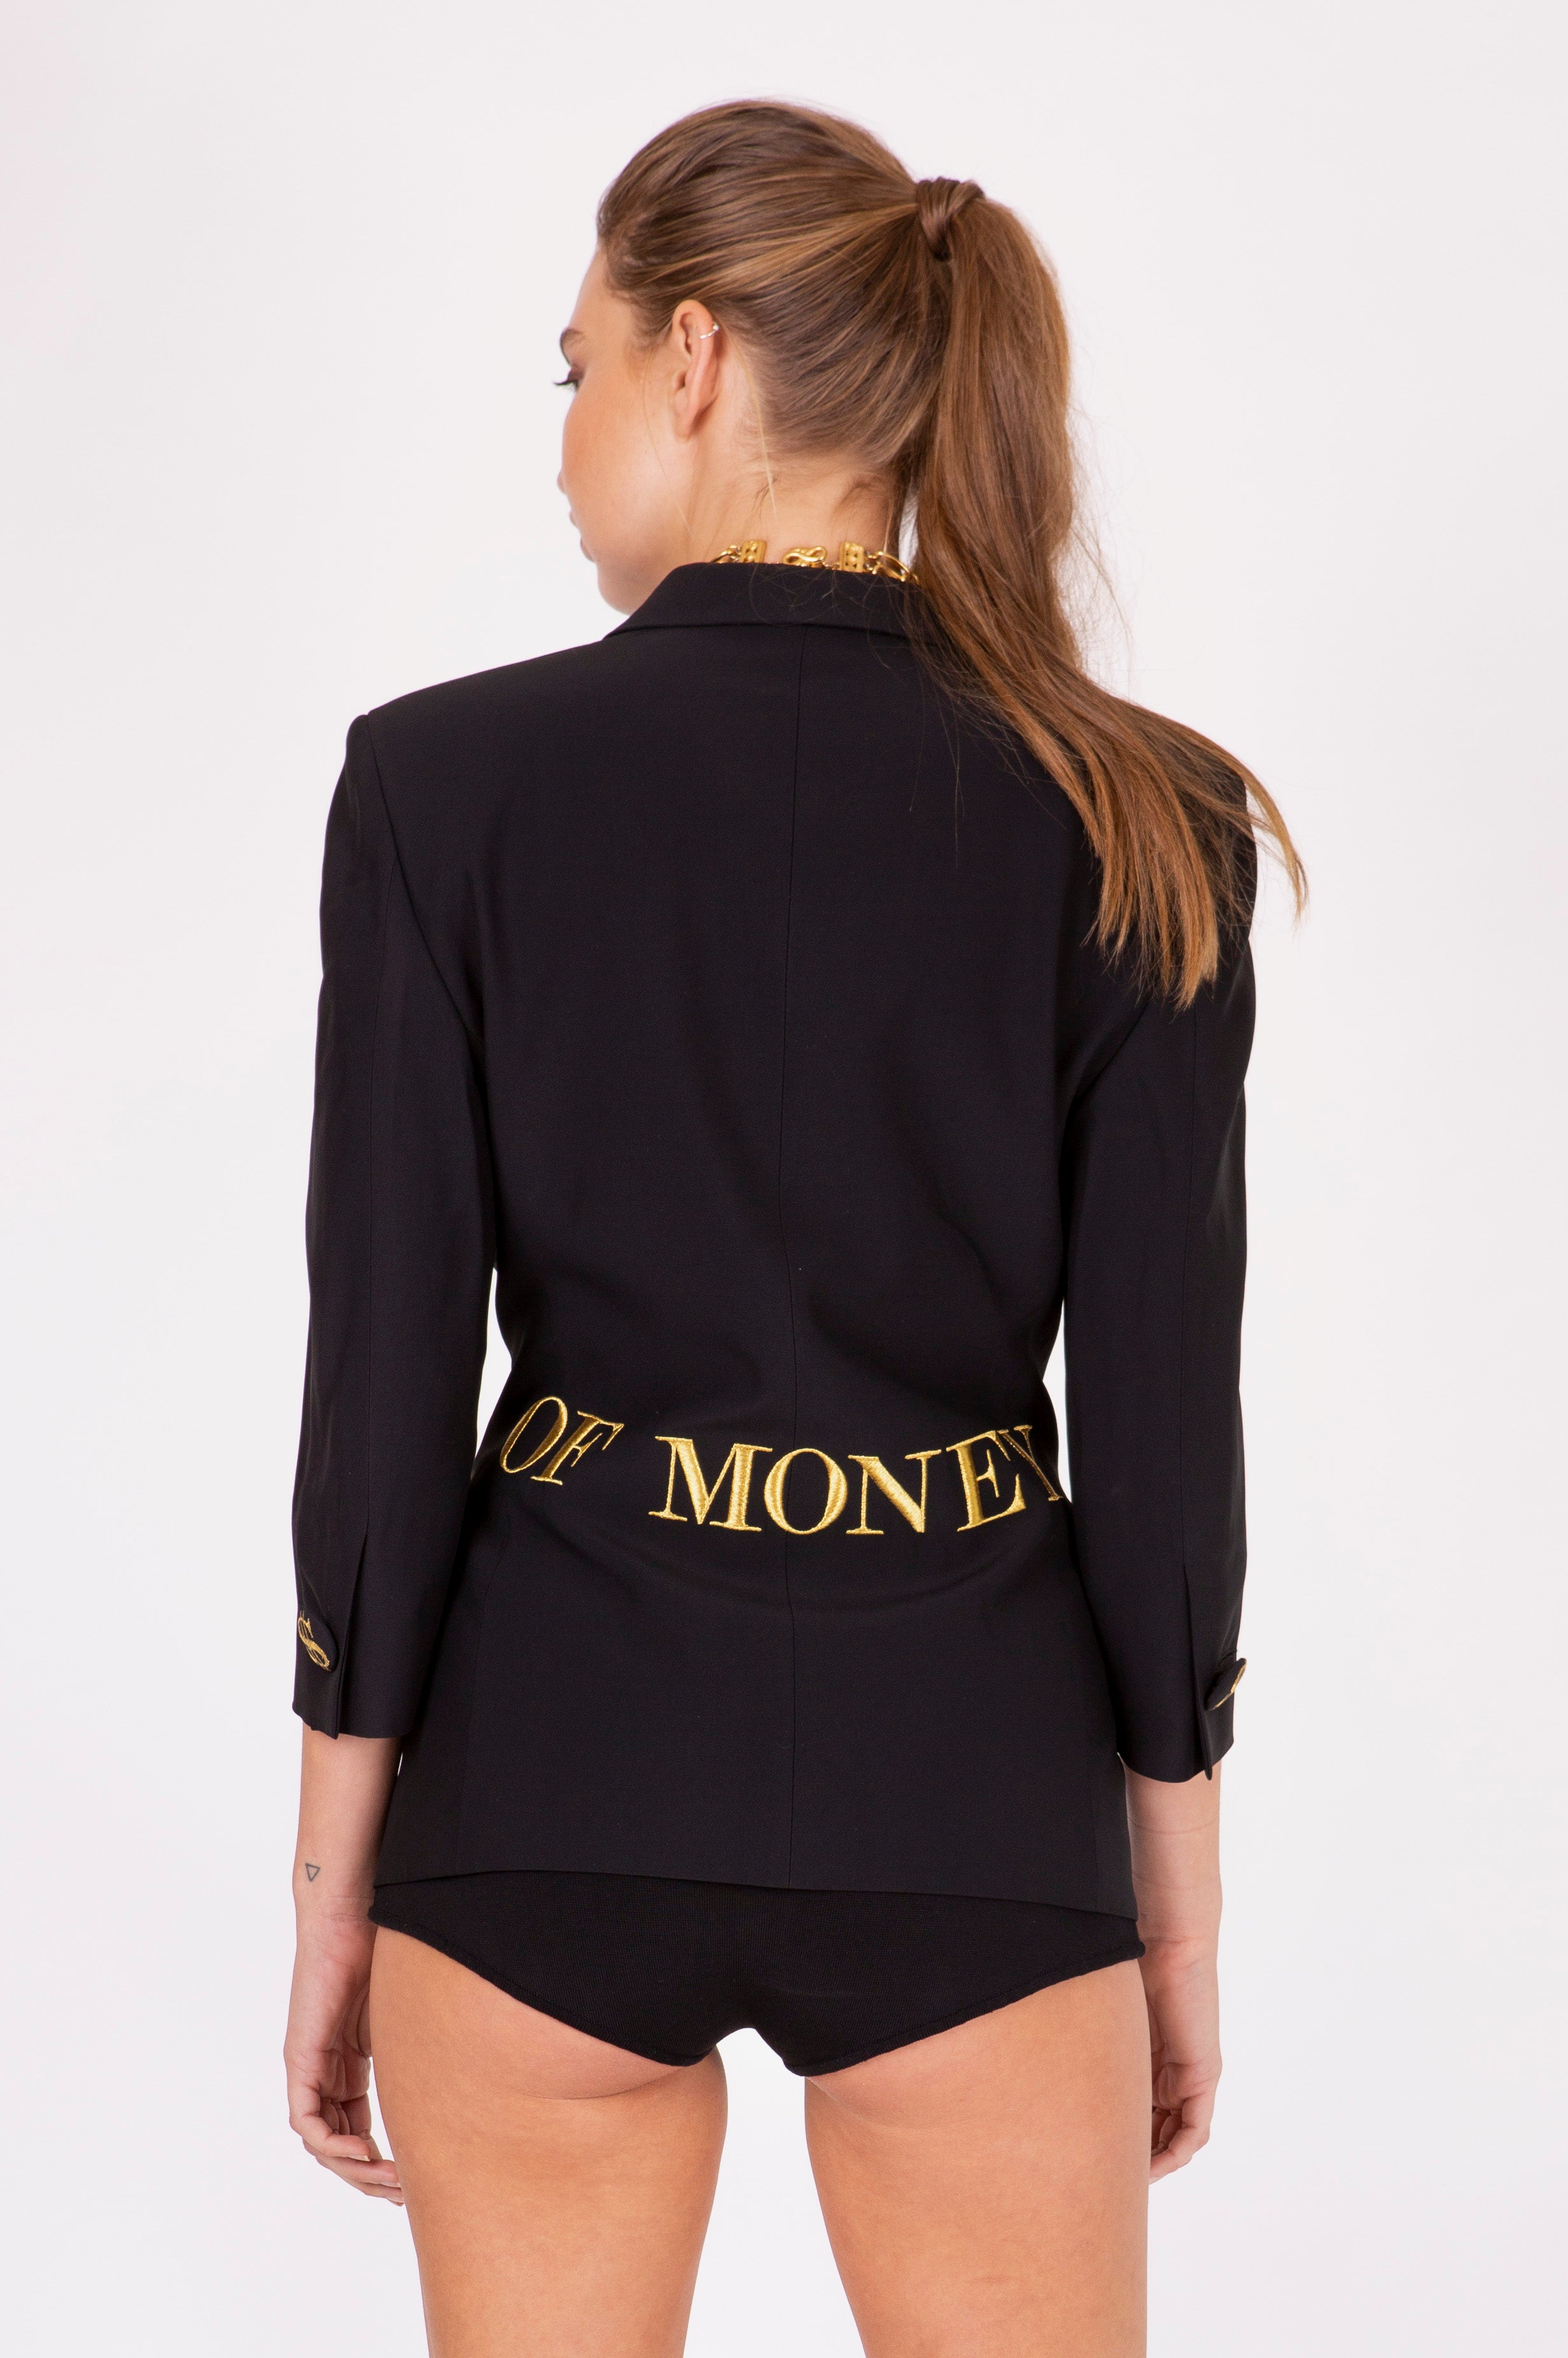 Moschino <br> 1991 'Waist of Money' Couture black blazer jacket